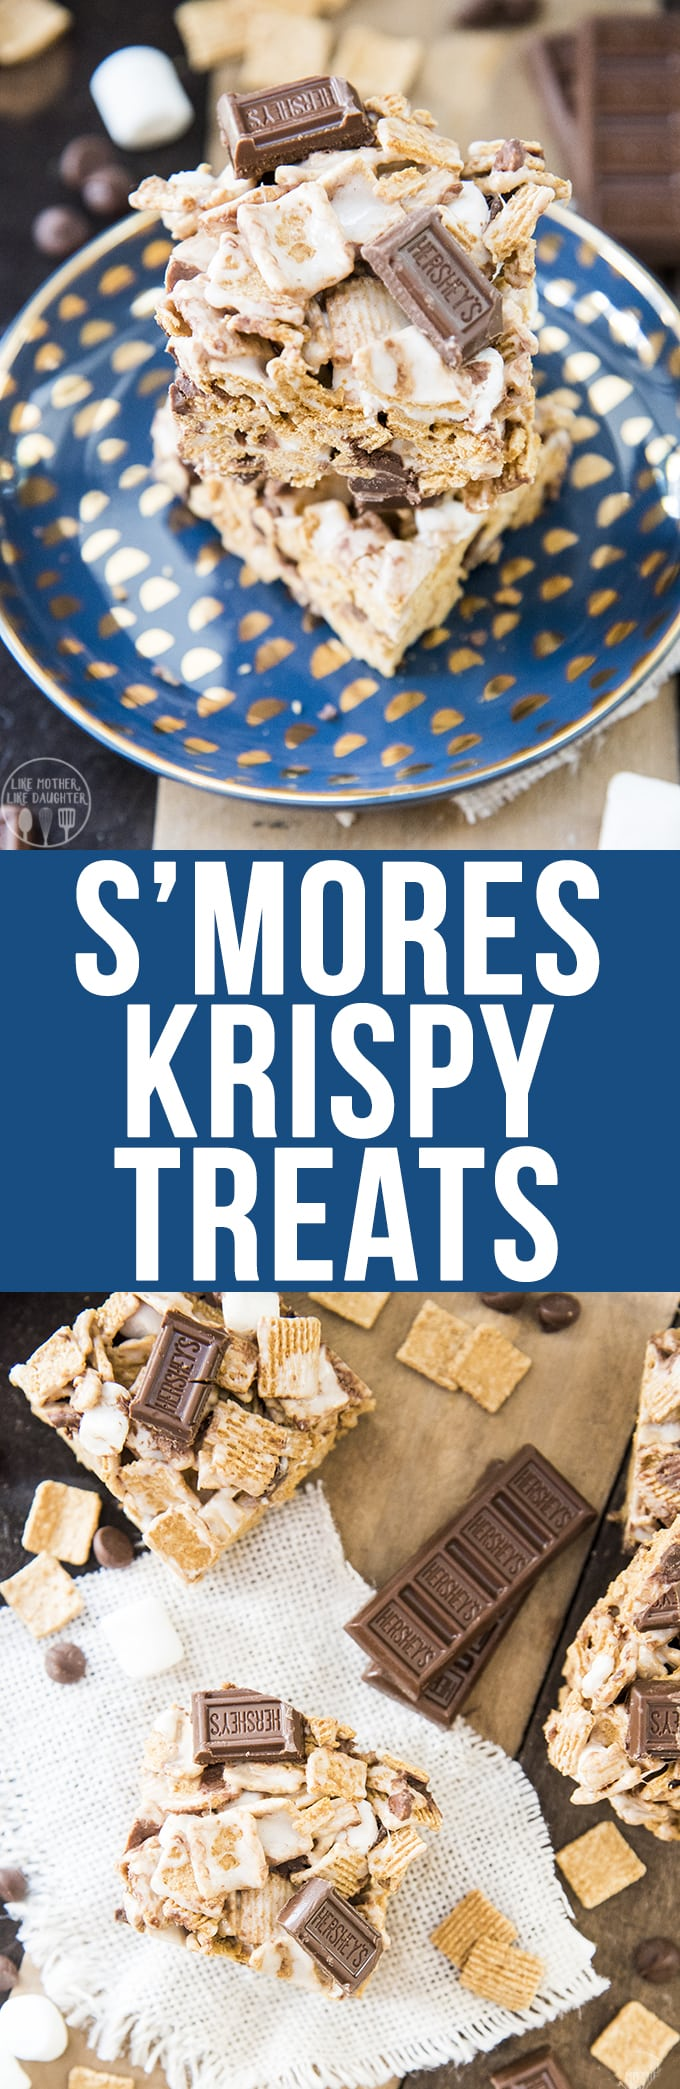 A twist on tradtional rice krispy treats, these s'more krispy treats are made with golden graham cereal and chocolate in addition to the gooey marshmallows.